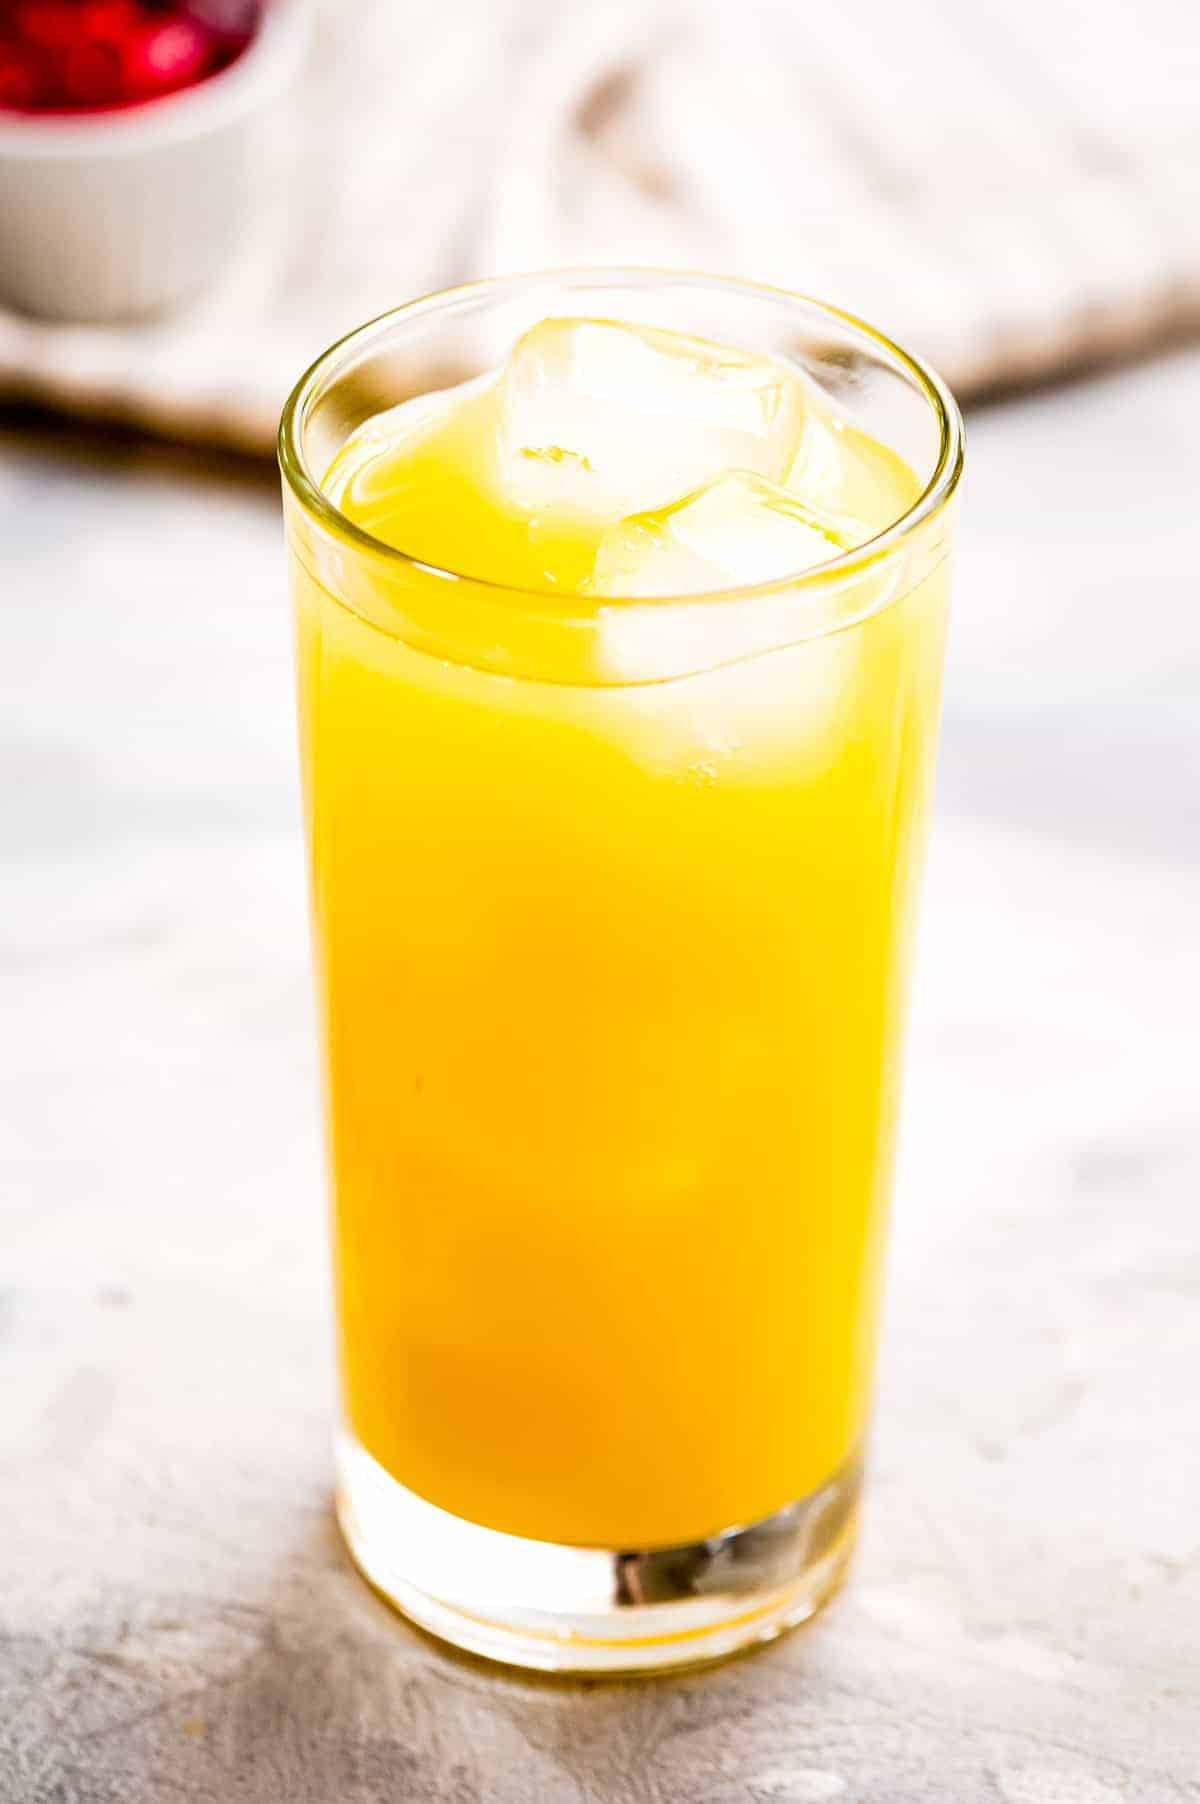 High ball glass with orange juice and ice cubes